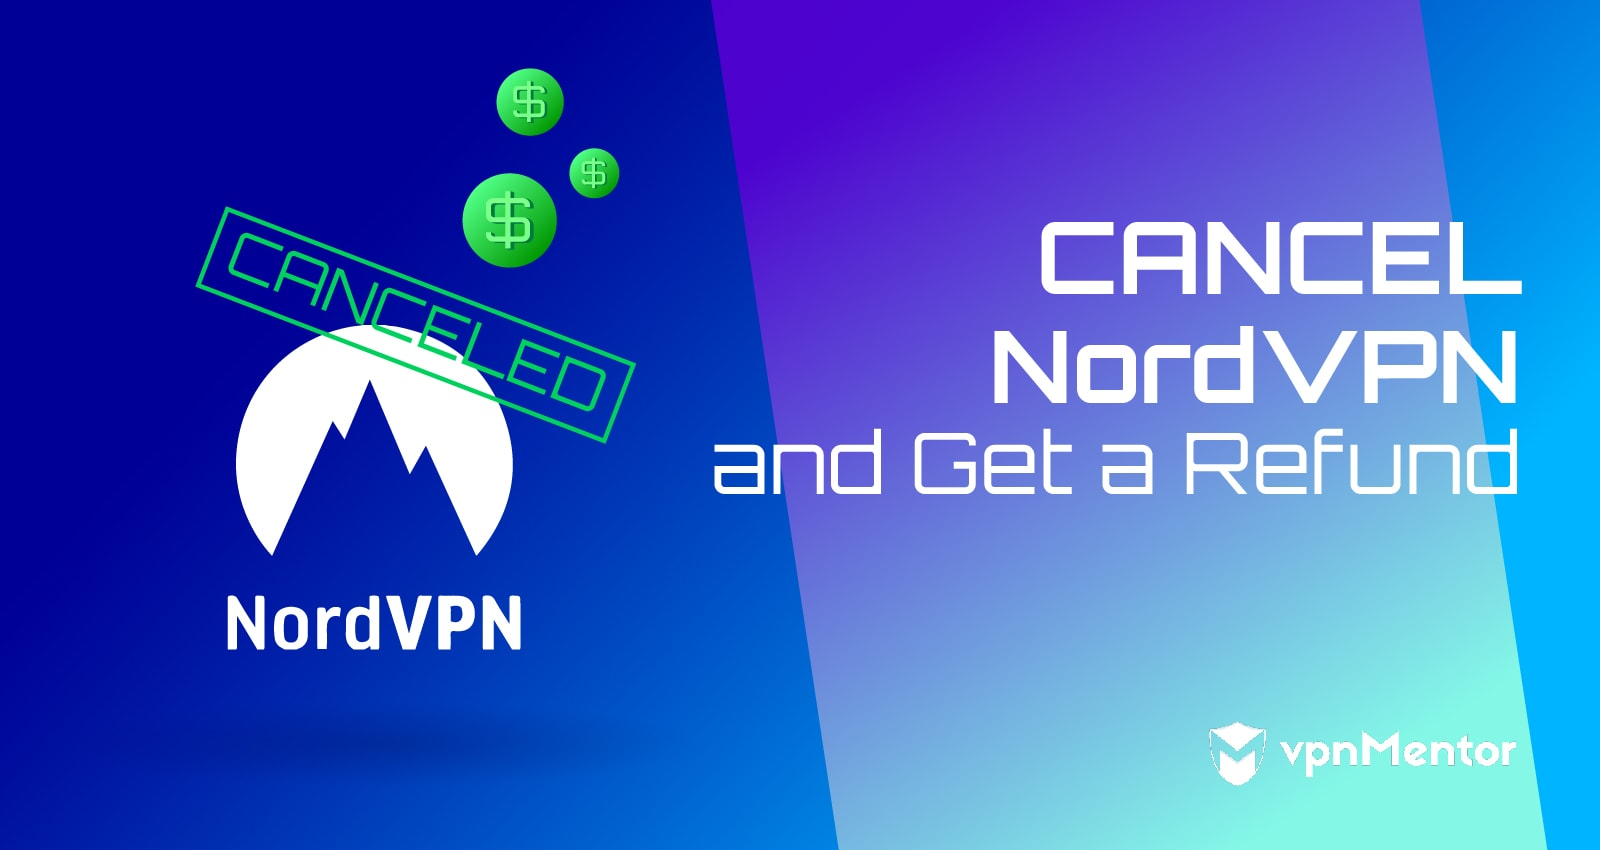 How to Cancel Your NordVPN Account and Get Refunded